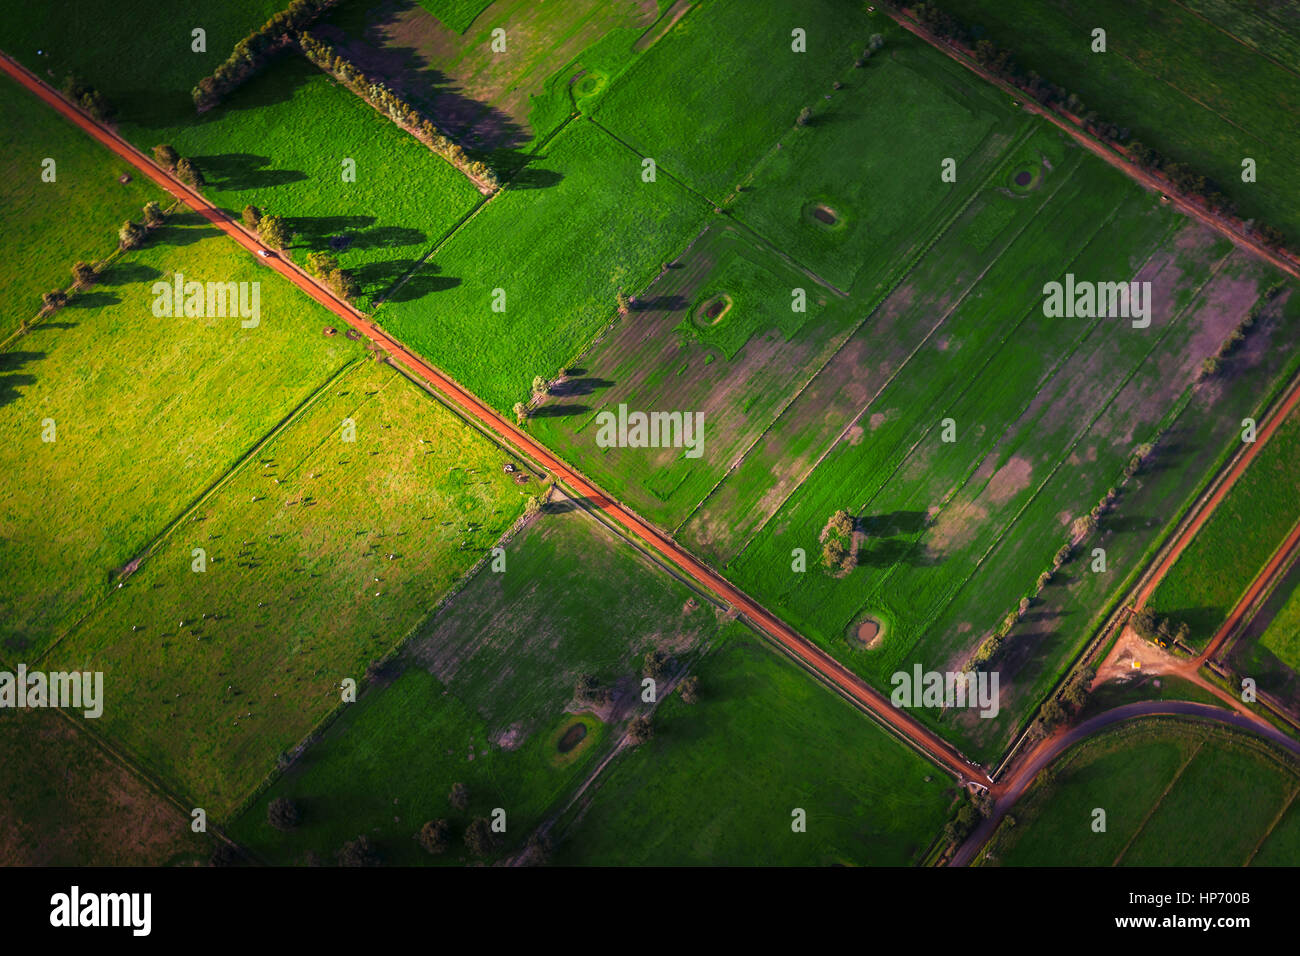 Green Fields - Stock Image